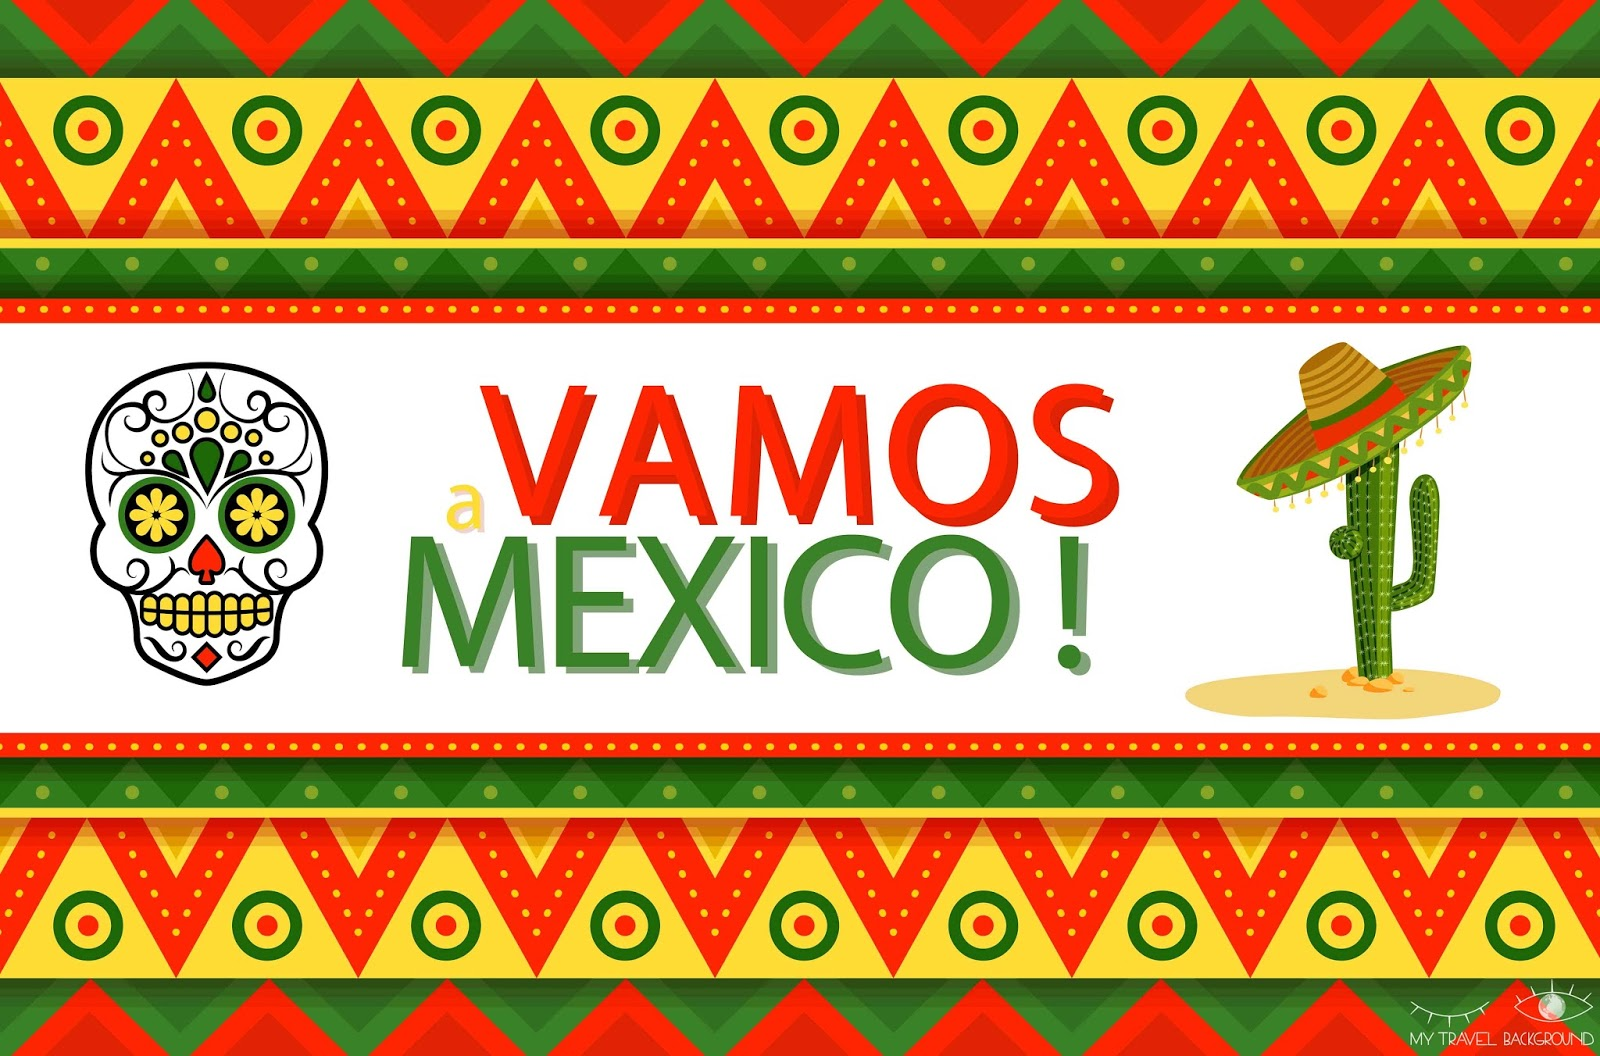 My Travel Background : Vamos a Mexico ! #EmiMexicoTrip